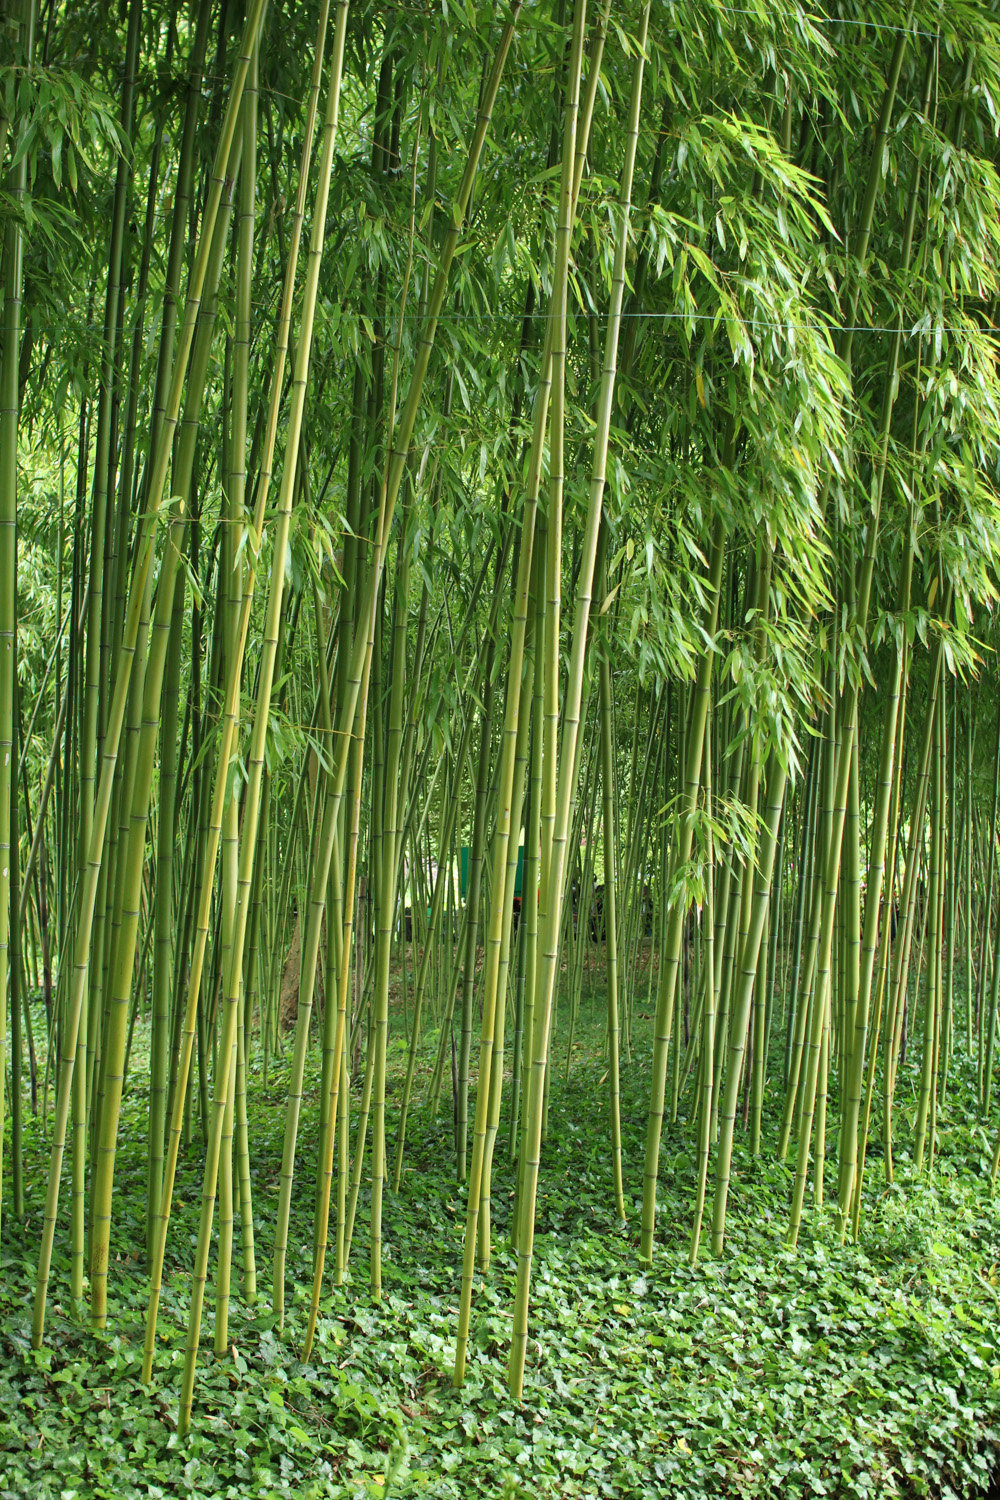 Bamboo in Monet's Garden, Giverny